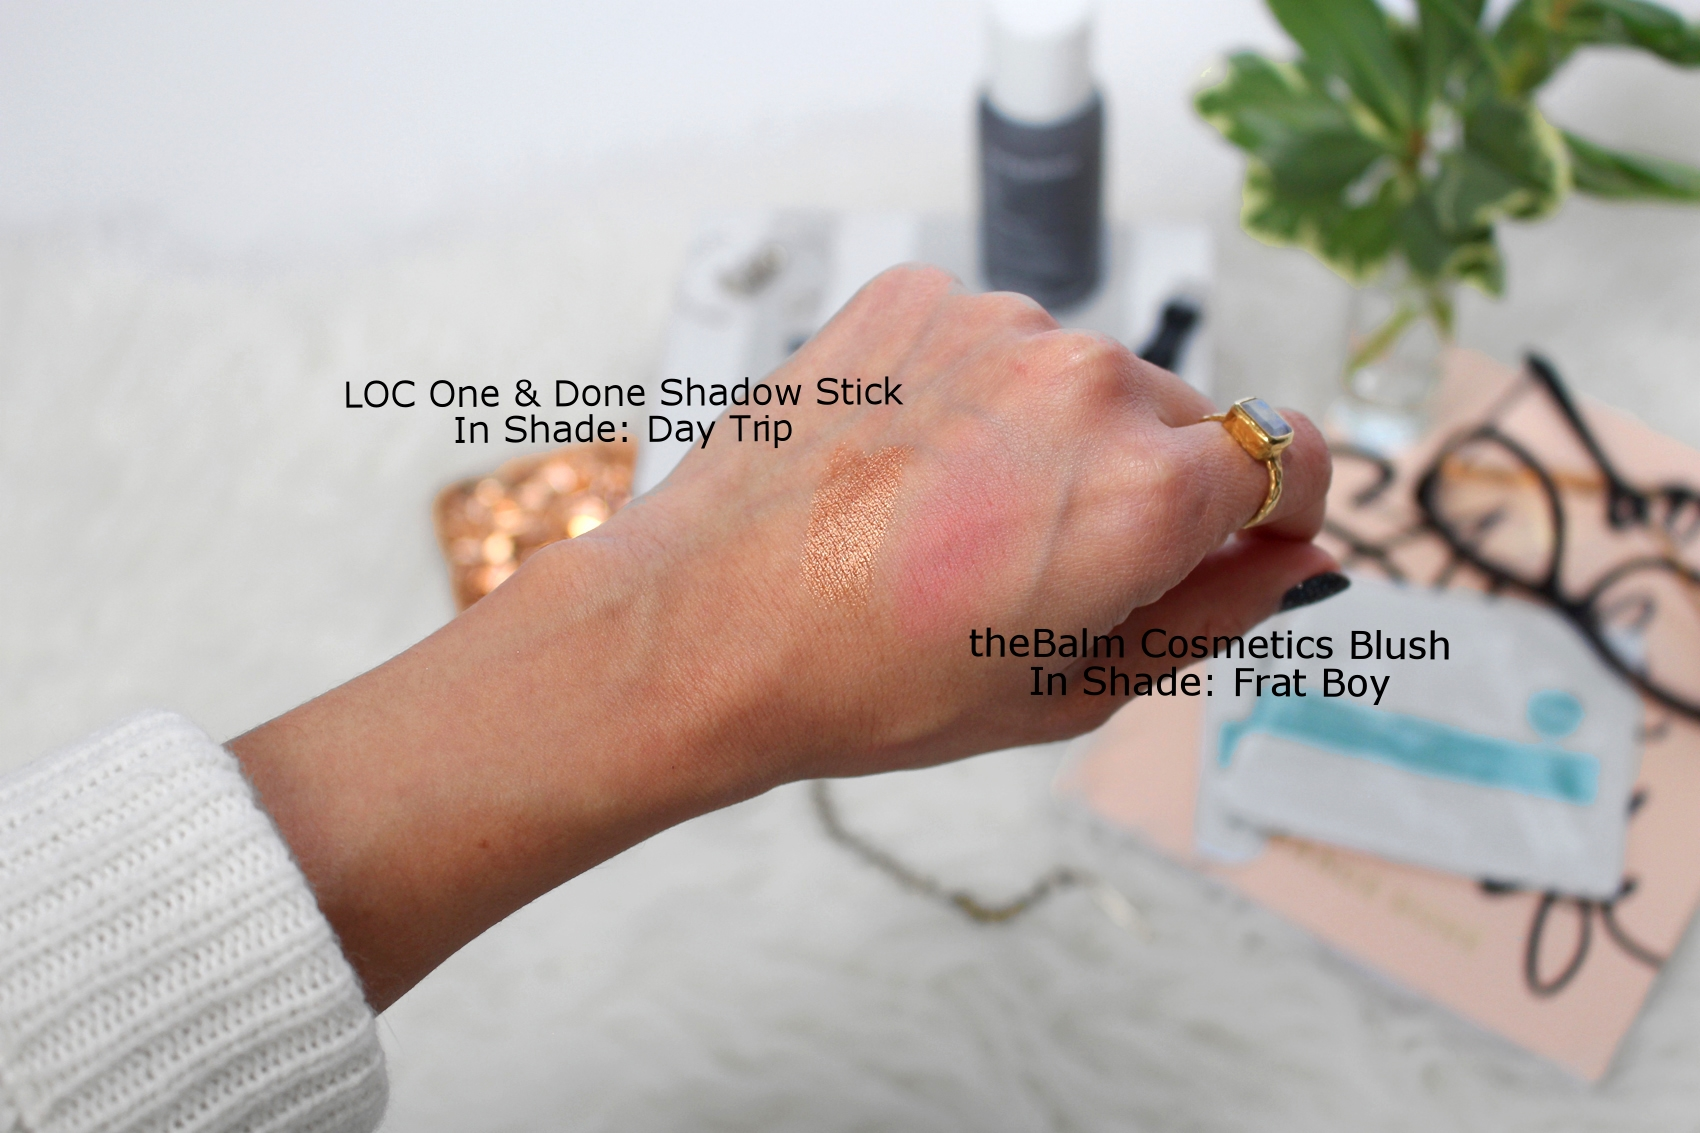 Swatch samples on Nathalie's light-medium olive skin. As you can see theBalm's Frat Boy blush shows up well on her skintone.